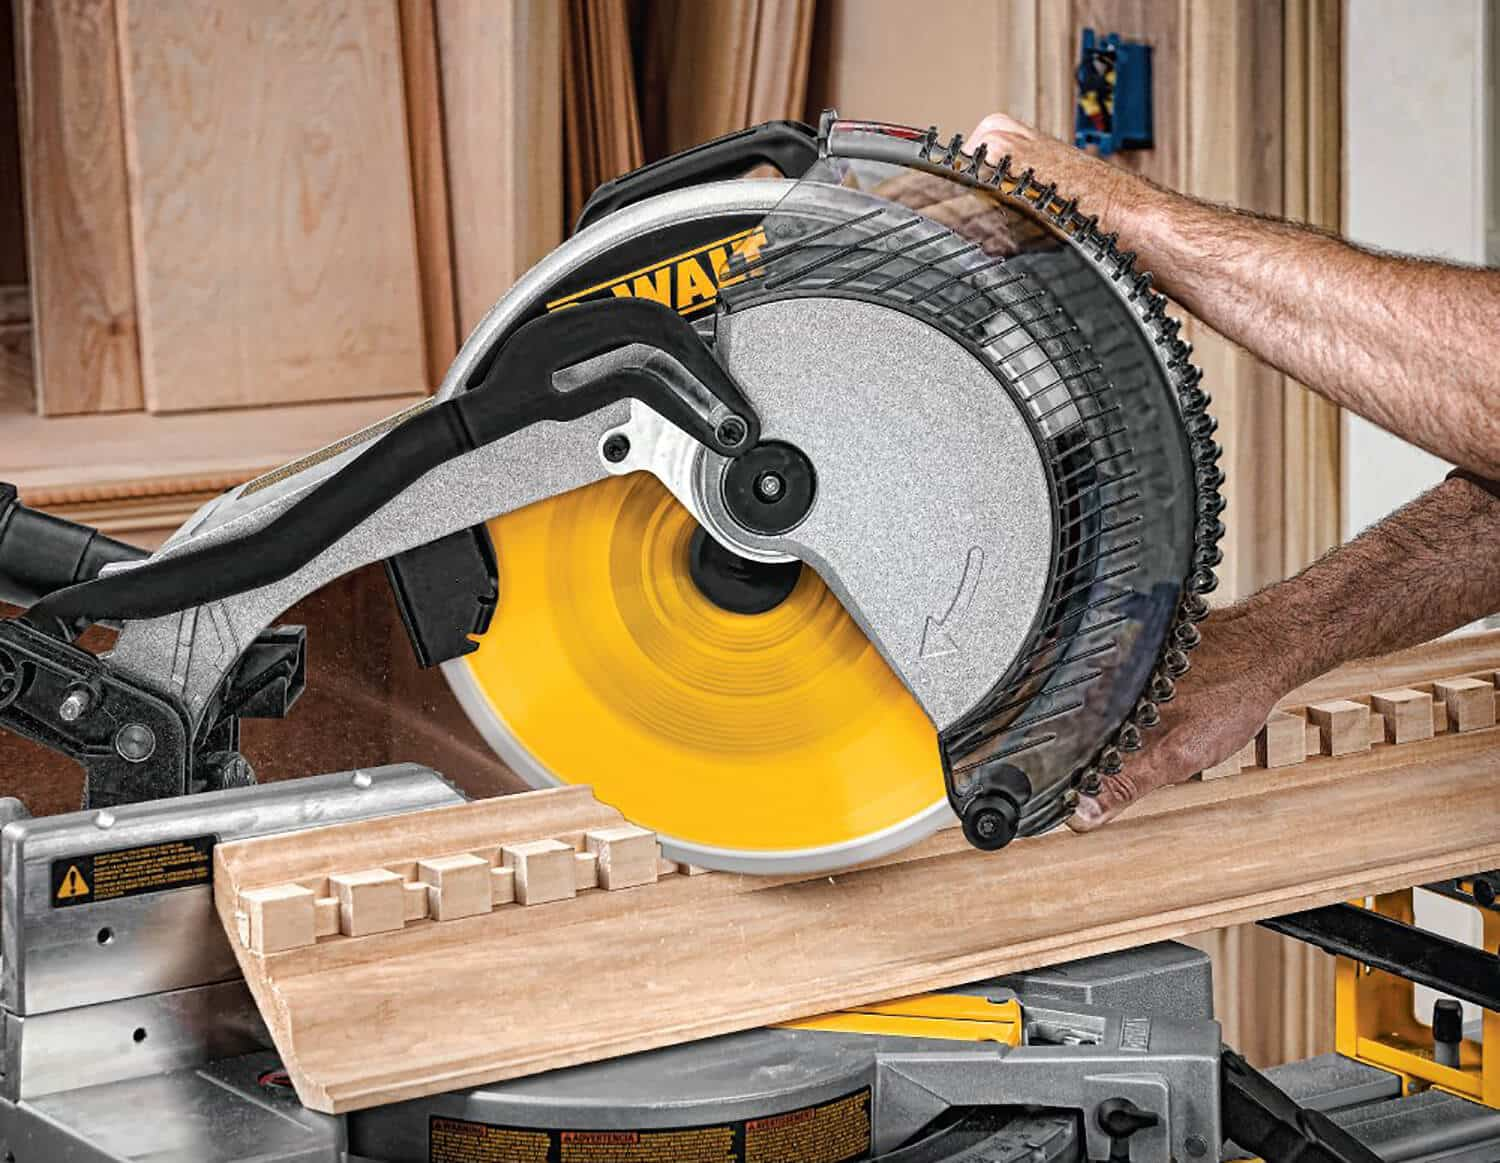 What Is A Dual Bevel Miter Saw - The Normal Miter Saw